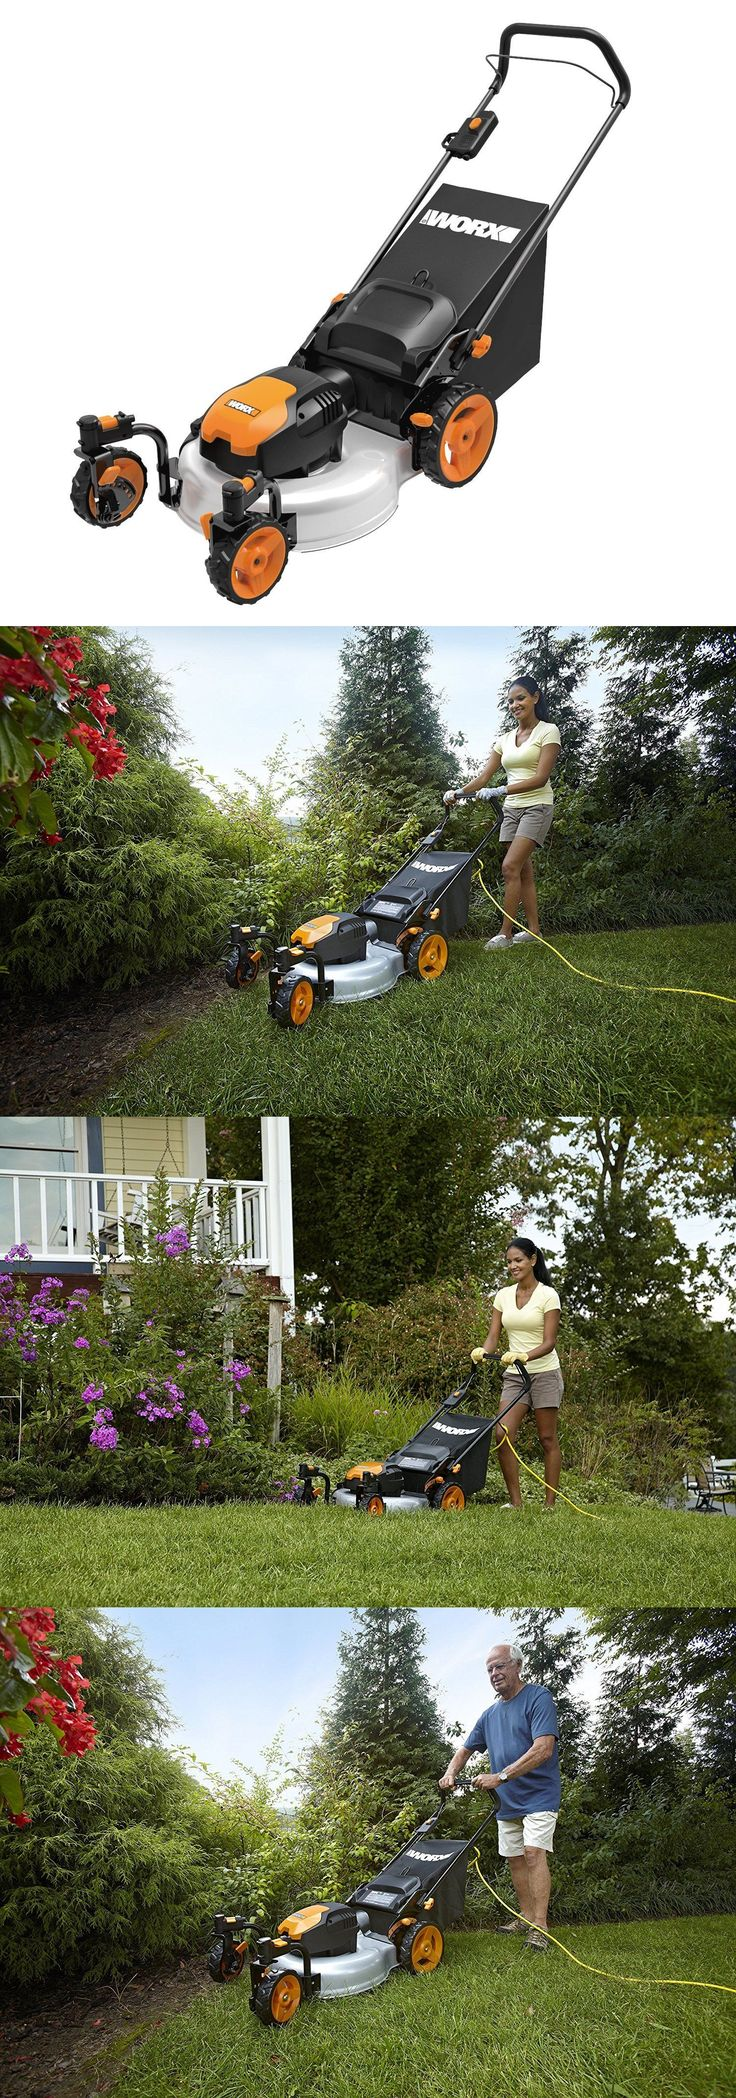 Walk-Behind Mowers 71272: Wg719 Worx 19 13 Amp Caster Wheeled Electric Lawn Mower Outdoor Backyard New -> BUY IT NOW ONLY: $275.09 on eBay!